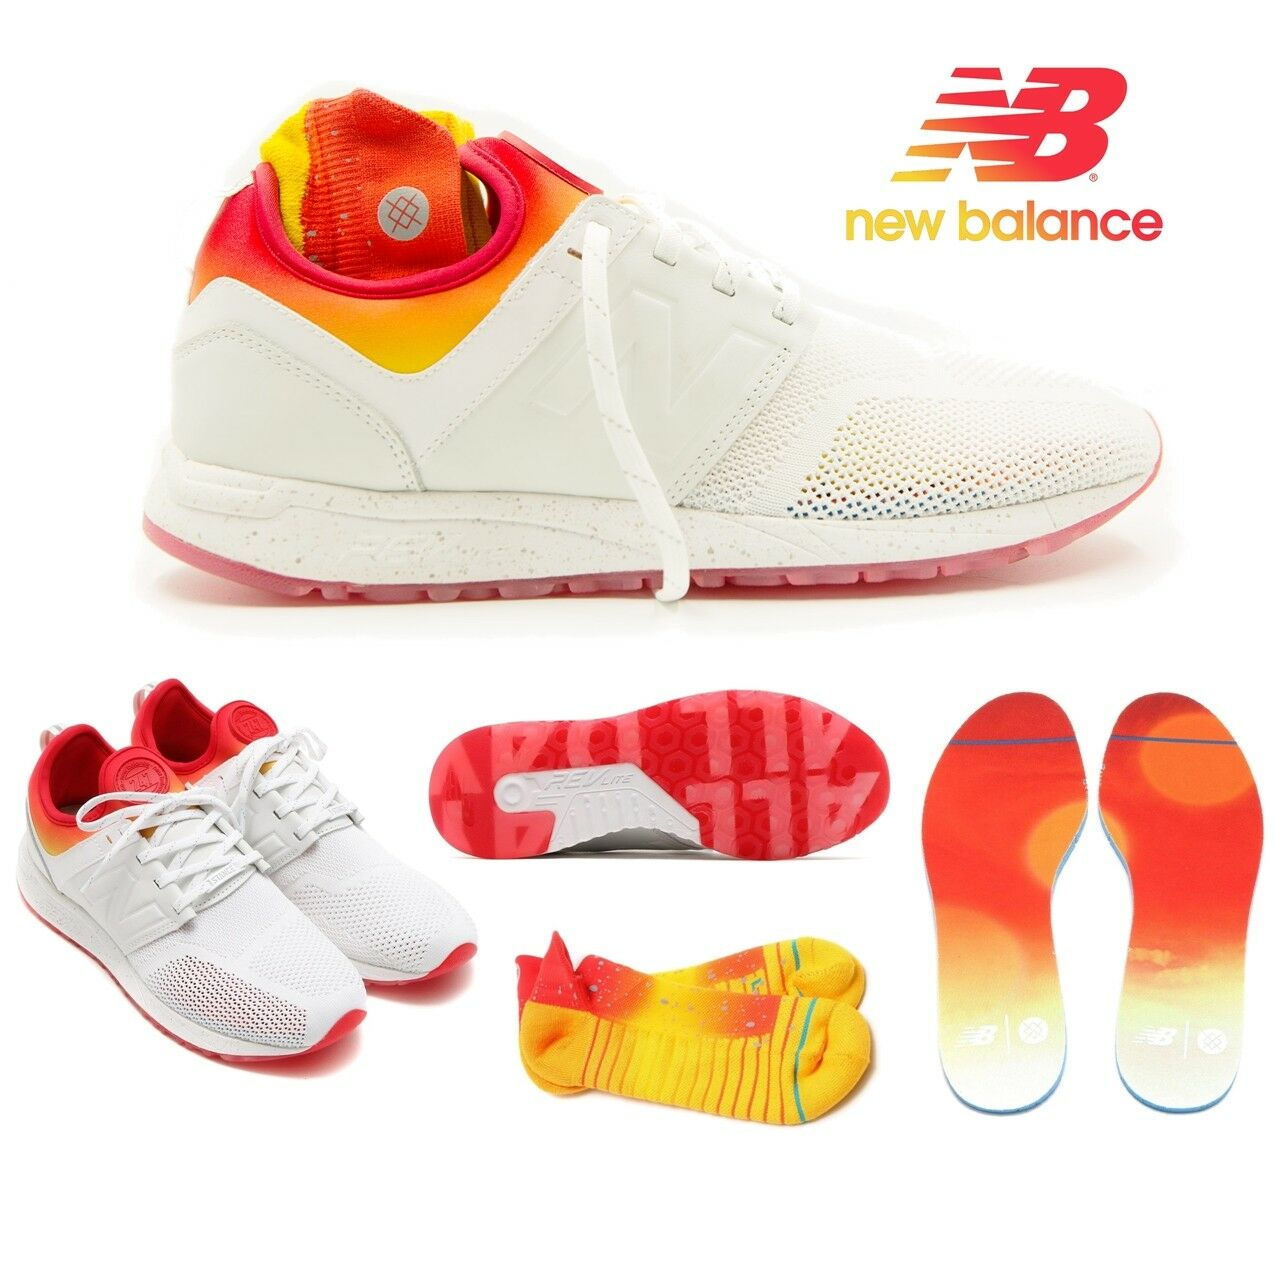 New Balance X Stance 247 Men's shoes All Day White Socks MRL247CO  150 Limited